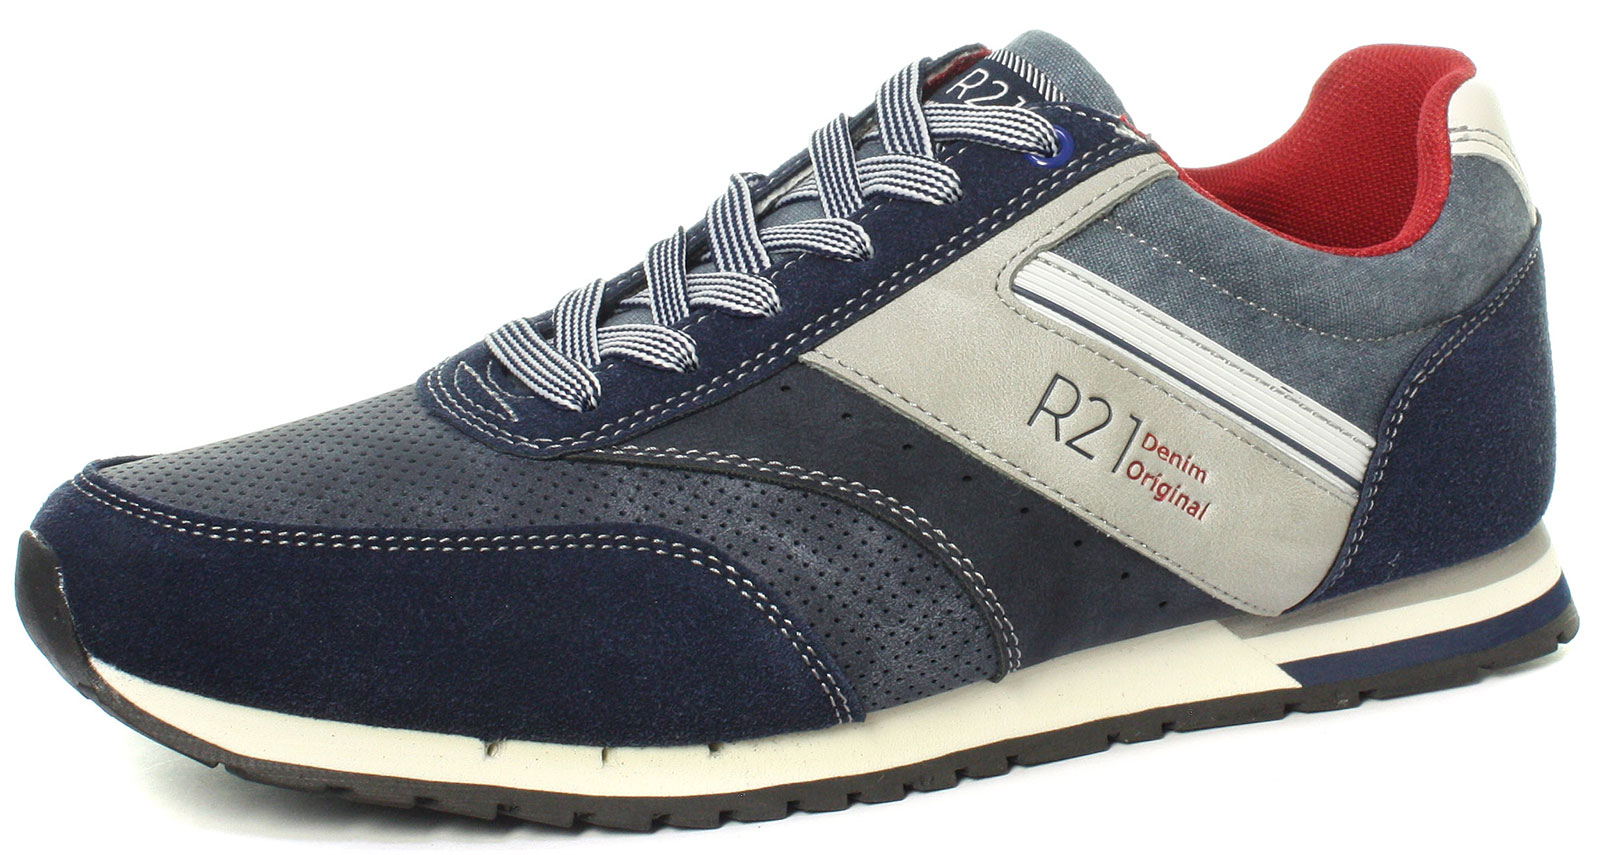 New Route 21 M708C 6 Eye Navy Mens Casual Trainer shoes Size UK 7 (EU 41)